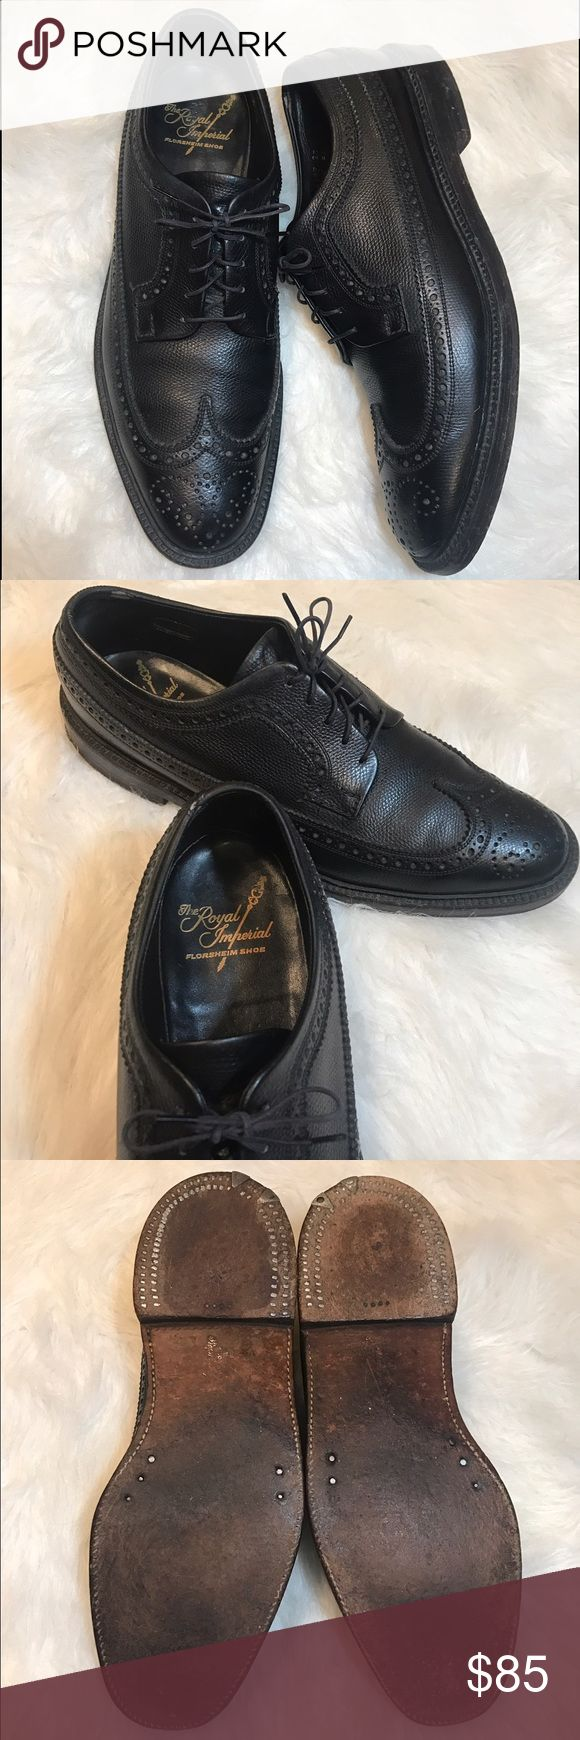 Florsheim Royal Imperial - Black Leather Wingtips Florsheim Royal Imperial black leather V-cleat wingtips. 5 nail. Florsheim's top of line shoe. Style number 96605. In excellent pre-loved condition. Slight wear marks on leather on inside of rear cuffs - shown in pictures. Beautiful shoes. Size 9.5 B (narrow). All leather construction. Made in USA. Leather soles. Florsheim Shoes Oxfords & Derbys